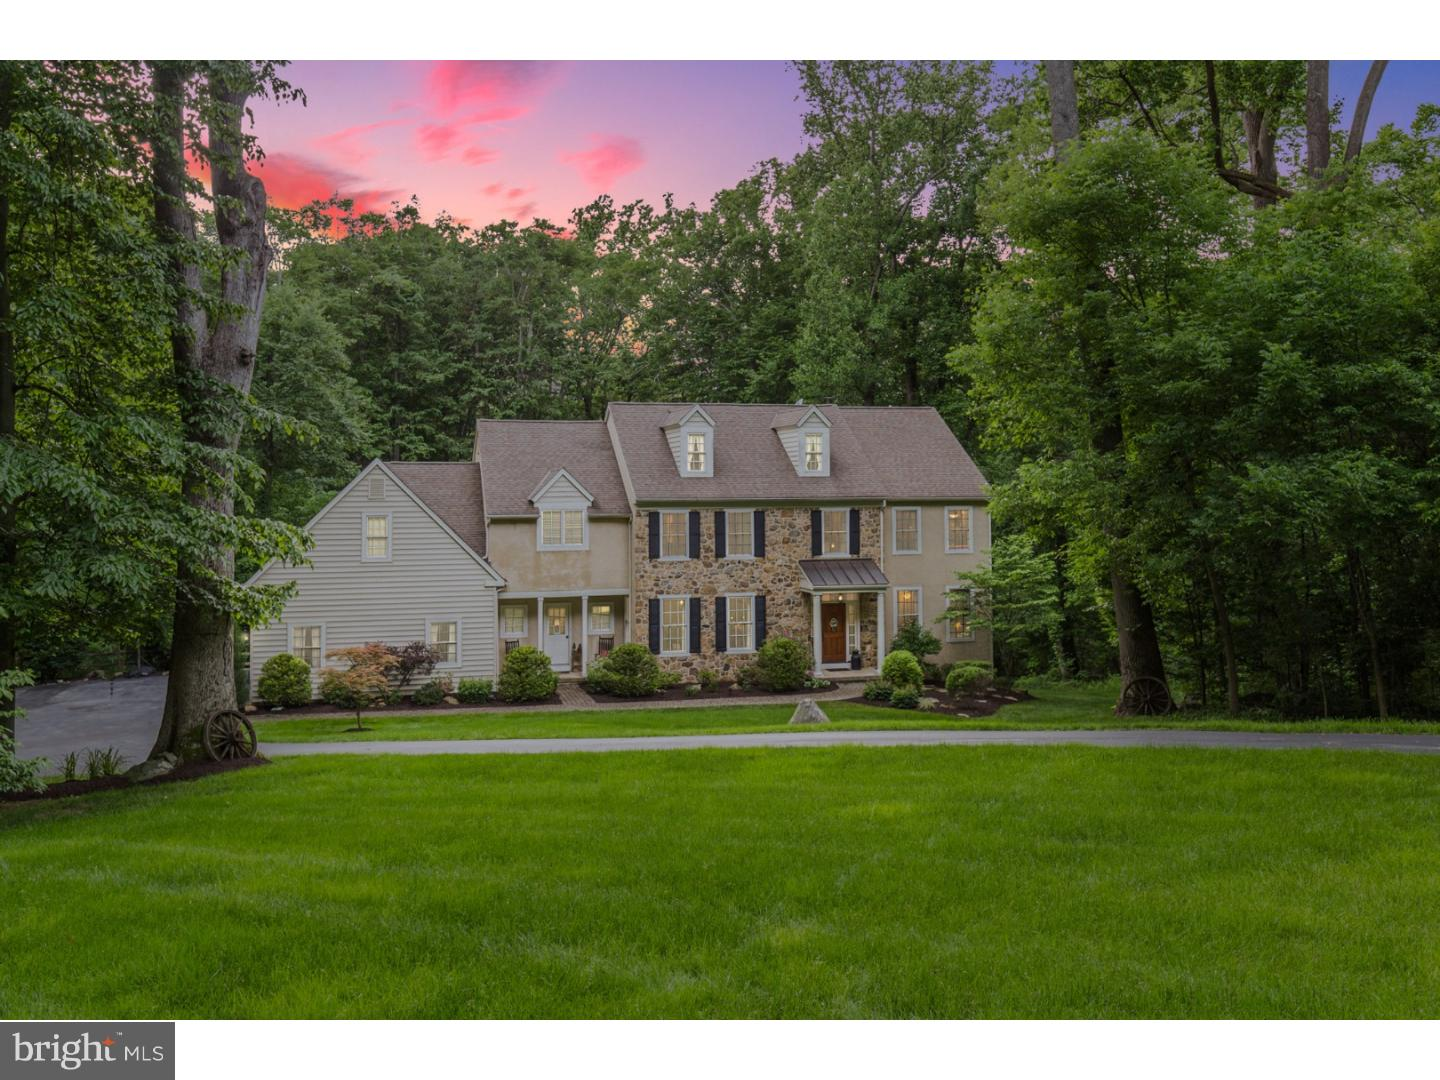 1433 ELBOW LANE, CHESTER SPRINGS, PA 19425